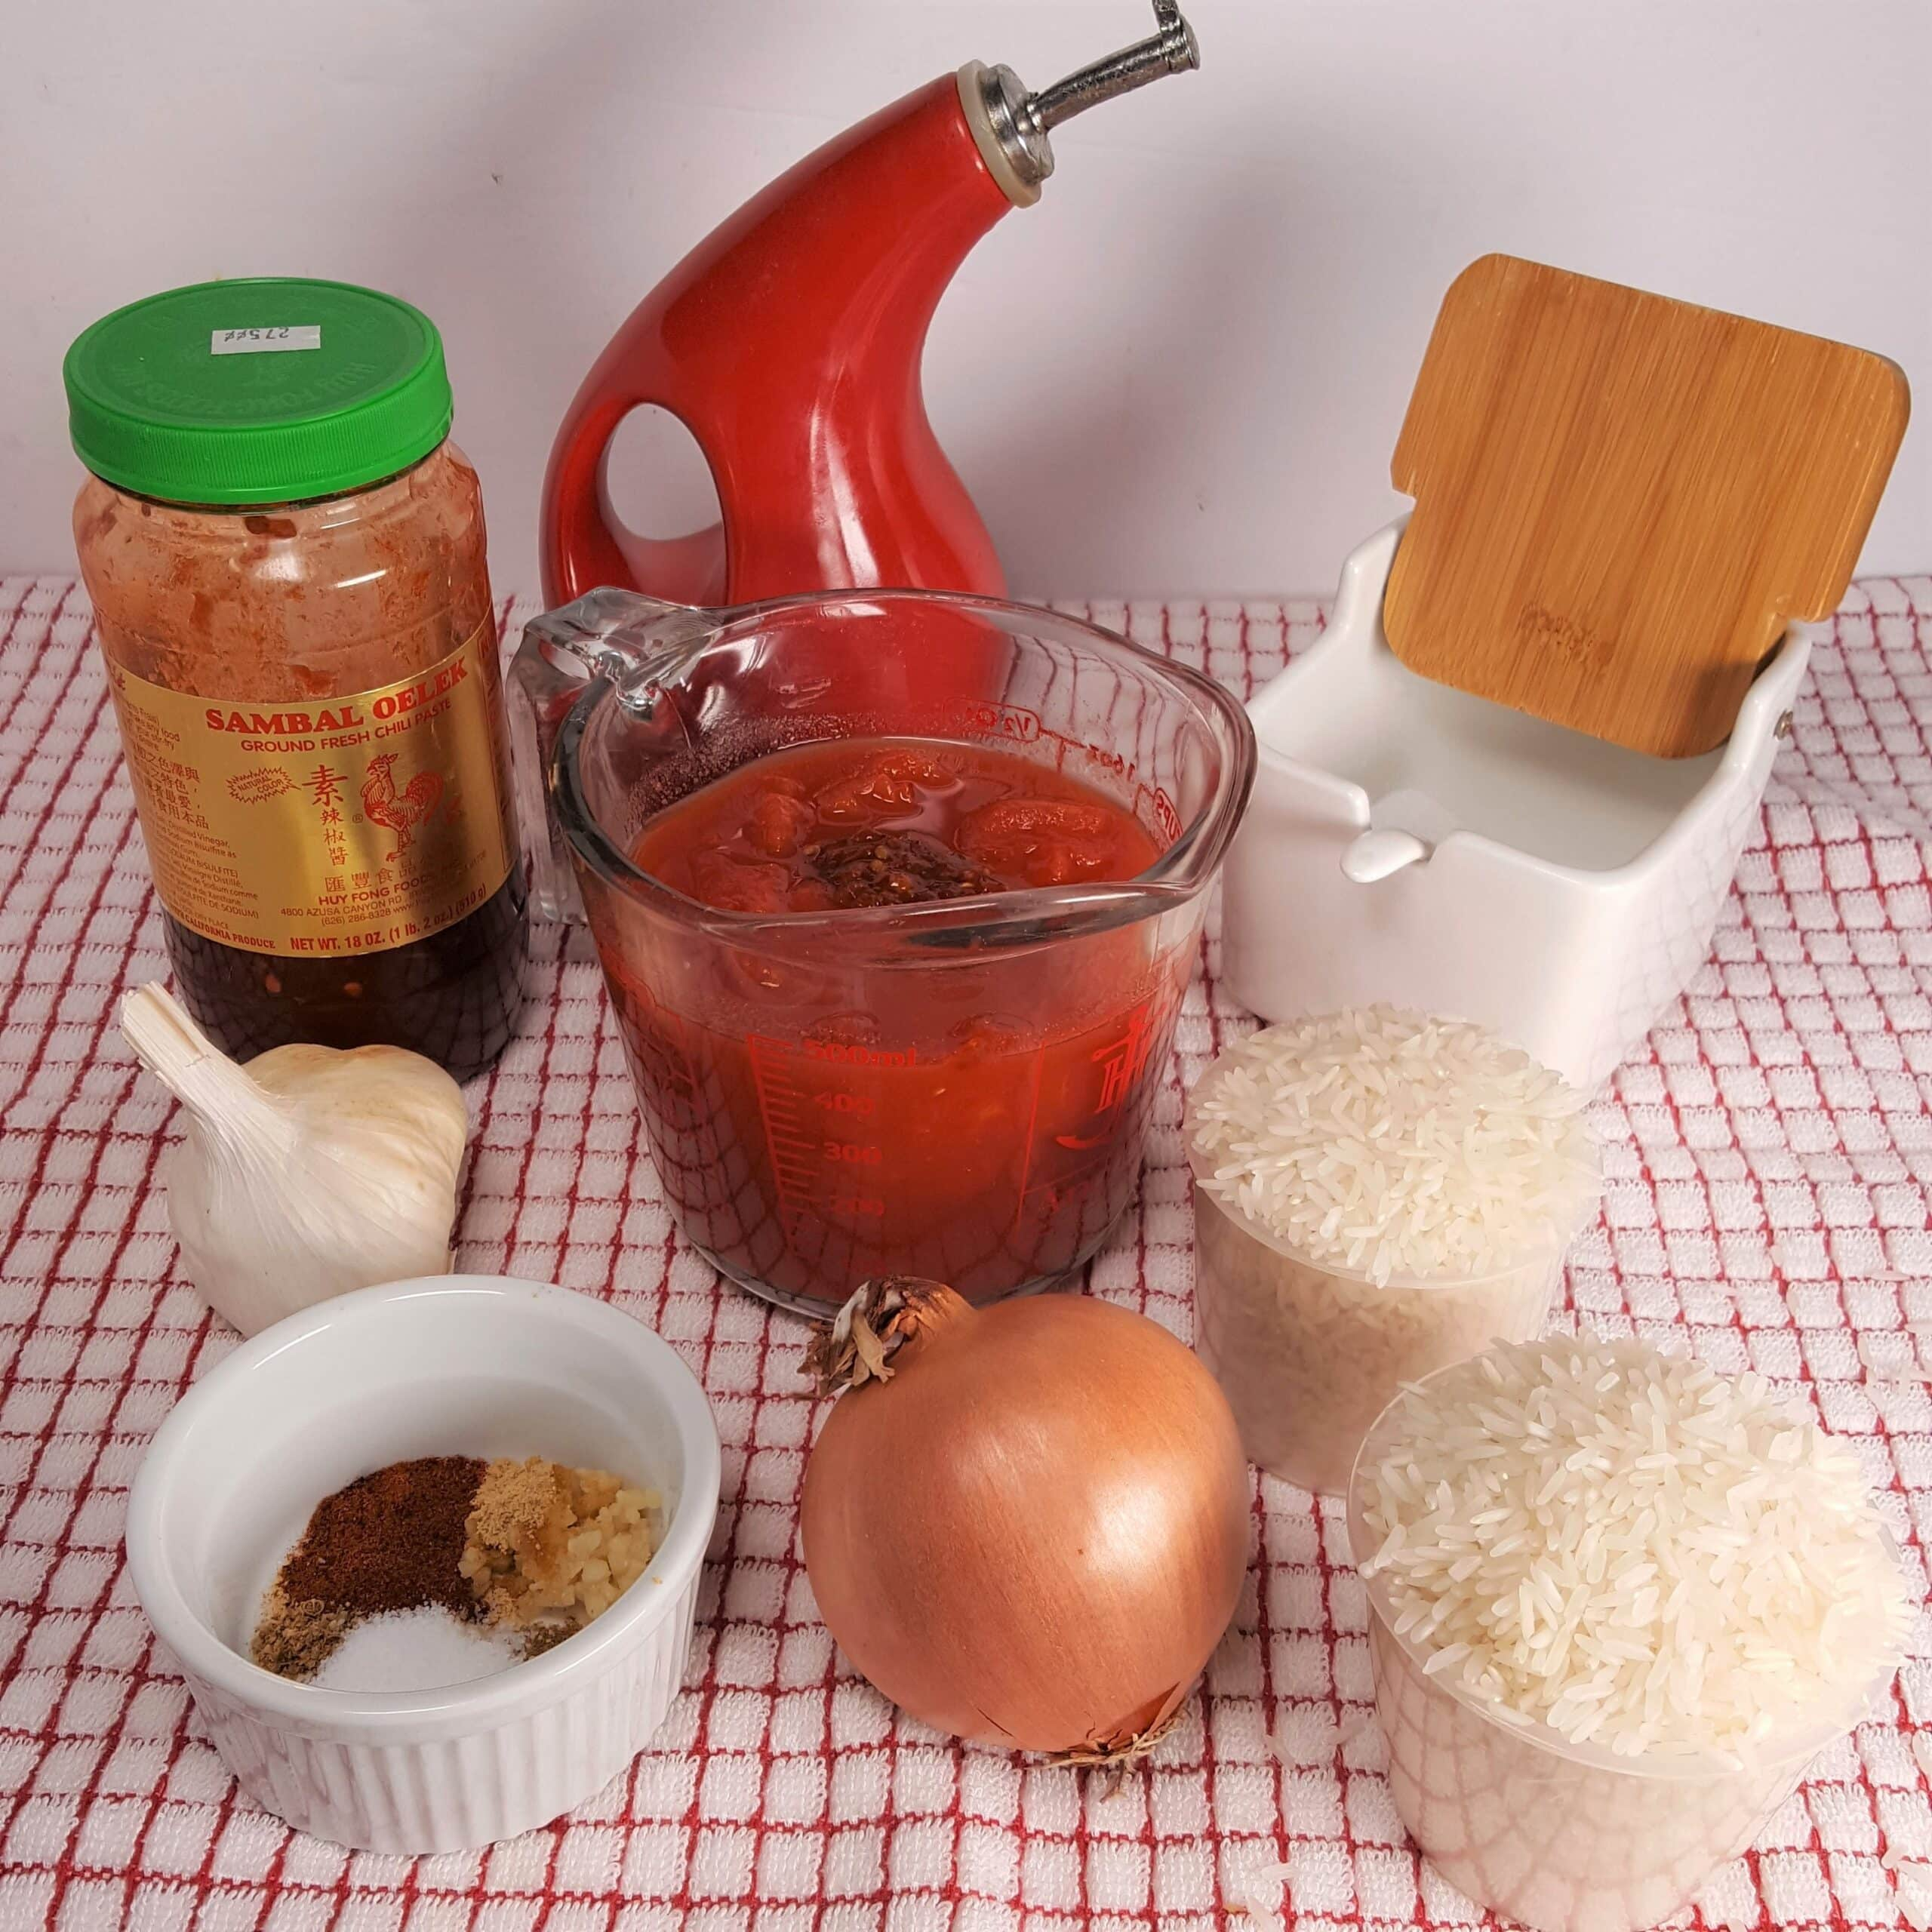 Cast of Ingredients for Pressure Cooker Jollof Rice - Sambal Oelek, Oil, Rice, Garlic, Onion, Tomato Sauce, Salt, Ginger on a red and white checked mat